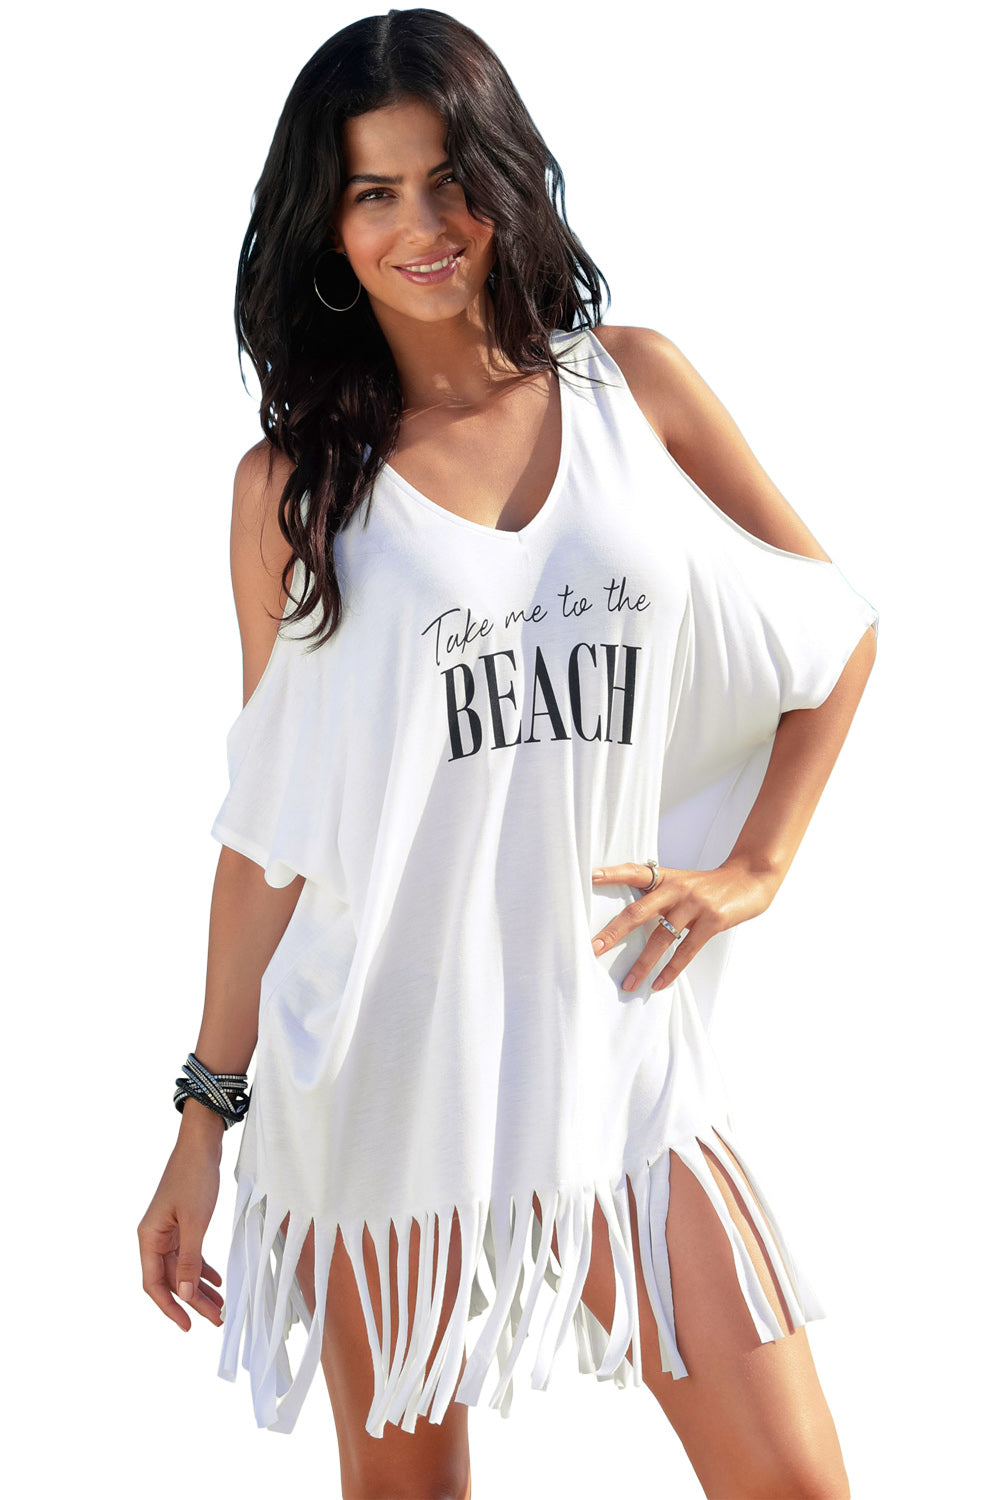 b327d95c1f Sexy White Loose Fit Take me to the BEACH Cover up – SEXY AFFORDABLE  CLOTHING